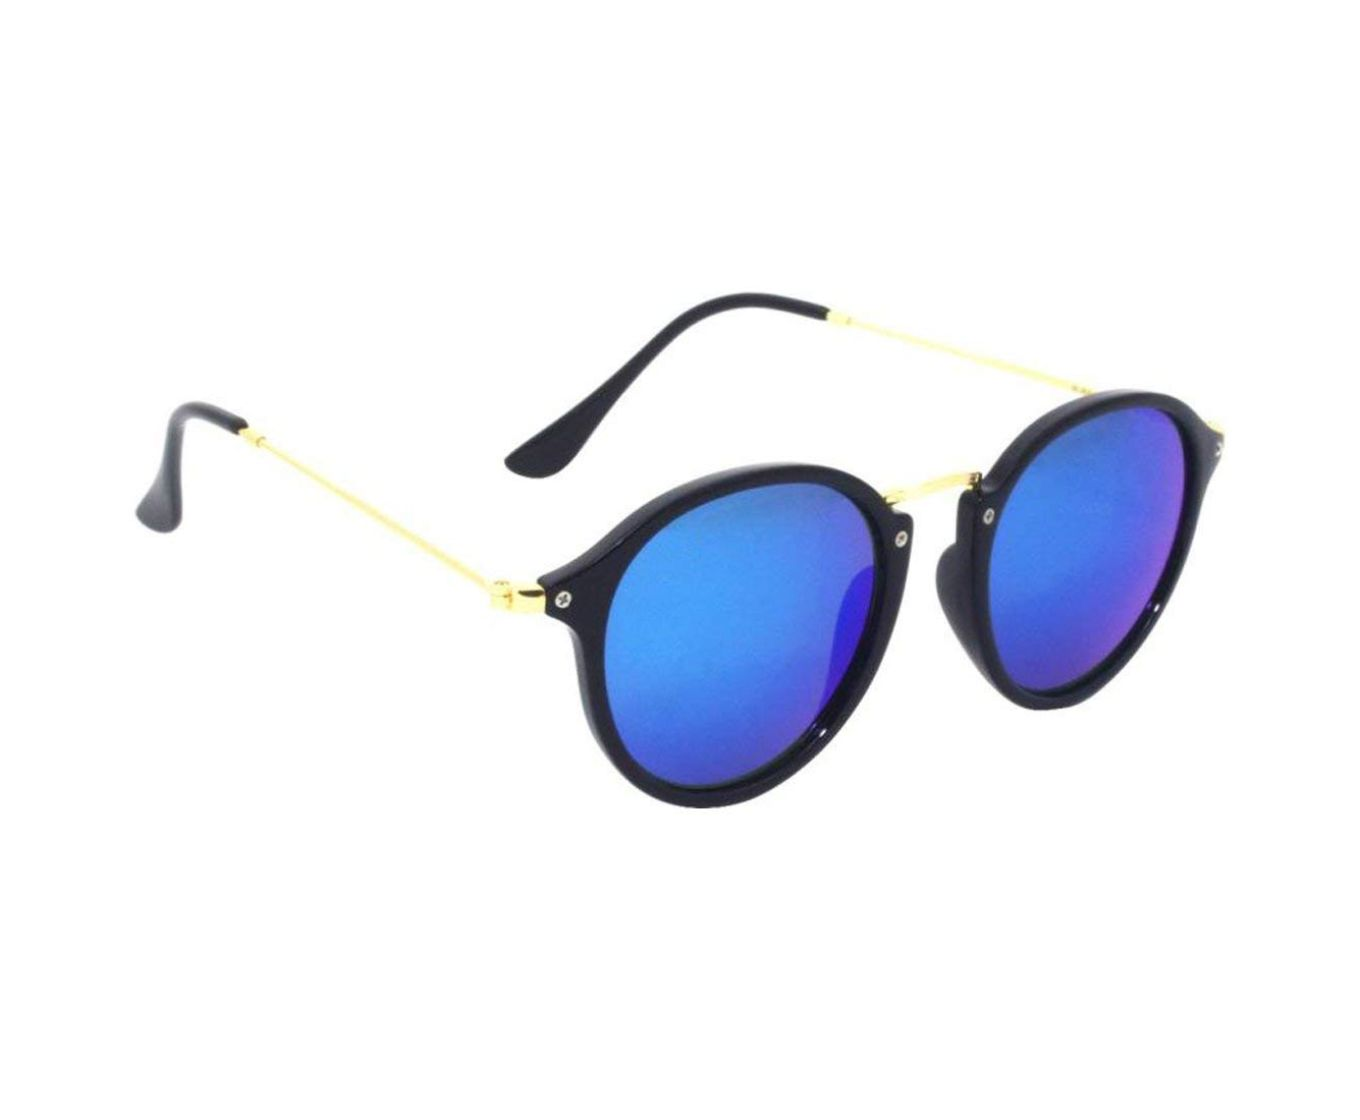 ETRG Unisex Premium  Oval Frames Black Metal Sunglasses (Pack of 2)